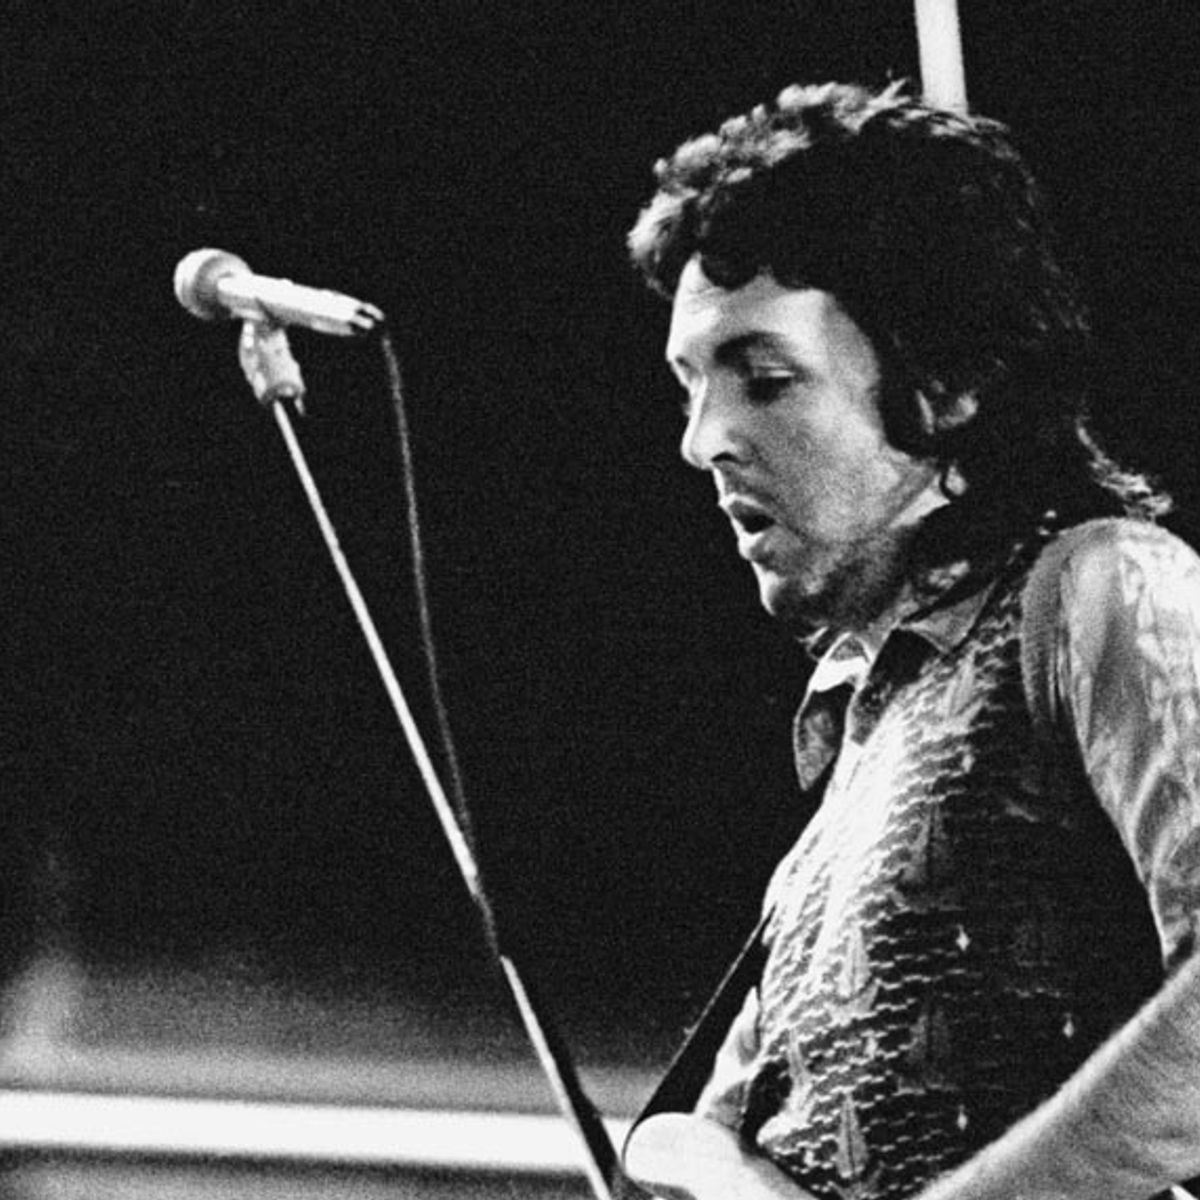 Wings was a better band than Paul McCartney or his critics think